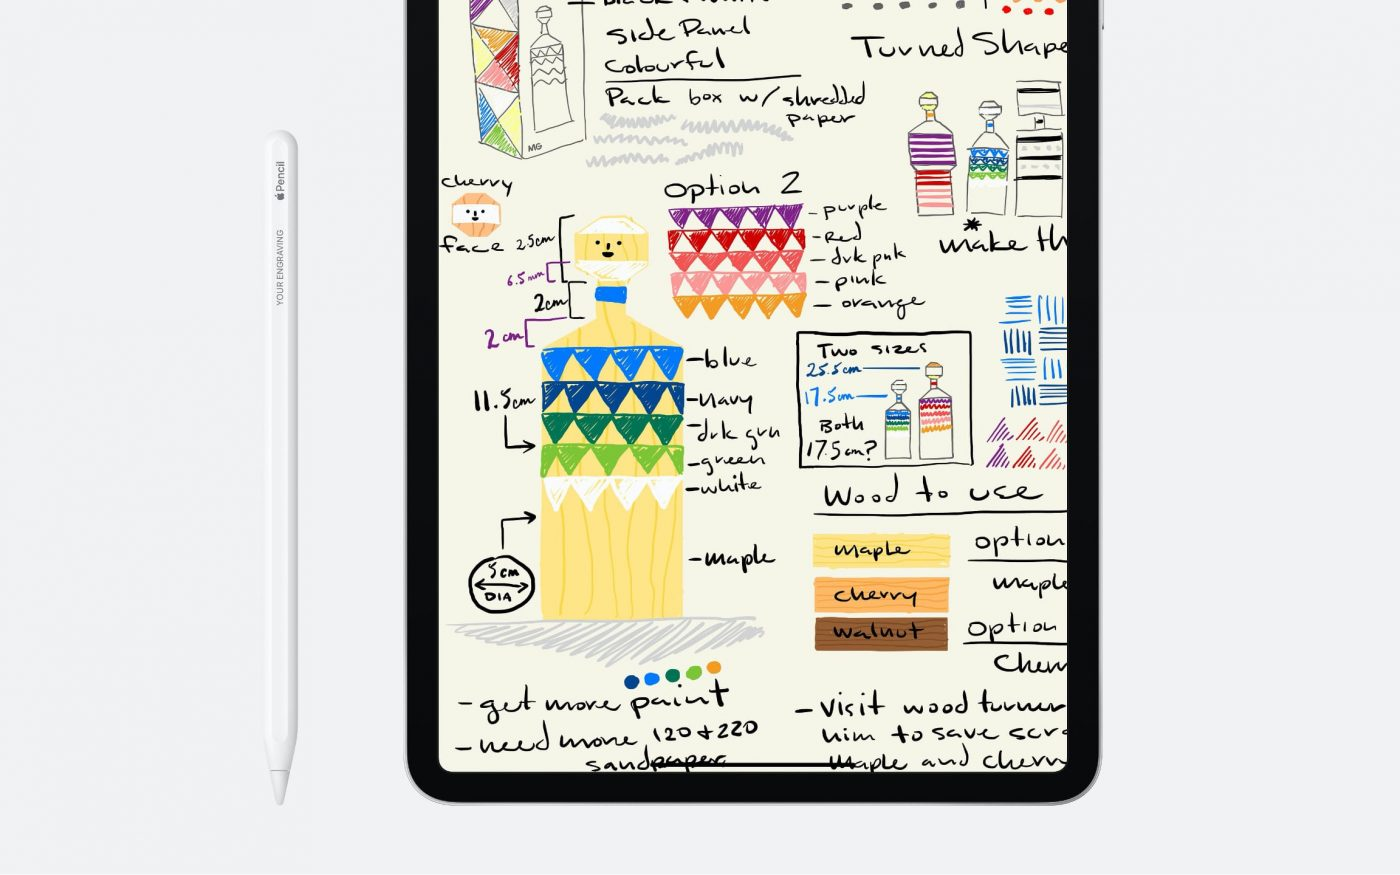 New iPad Pro 2020 with Apple Pencil and Drawing